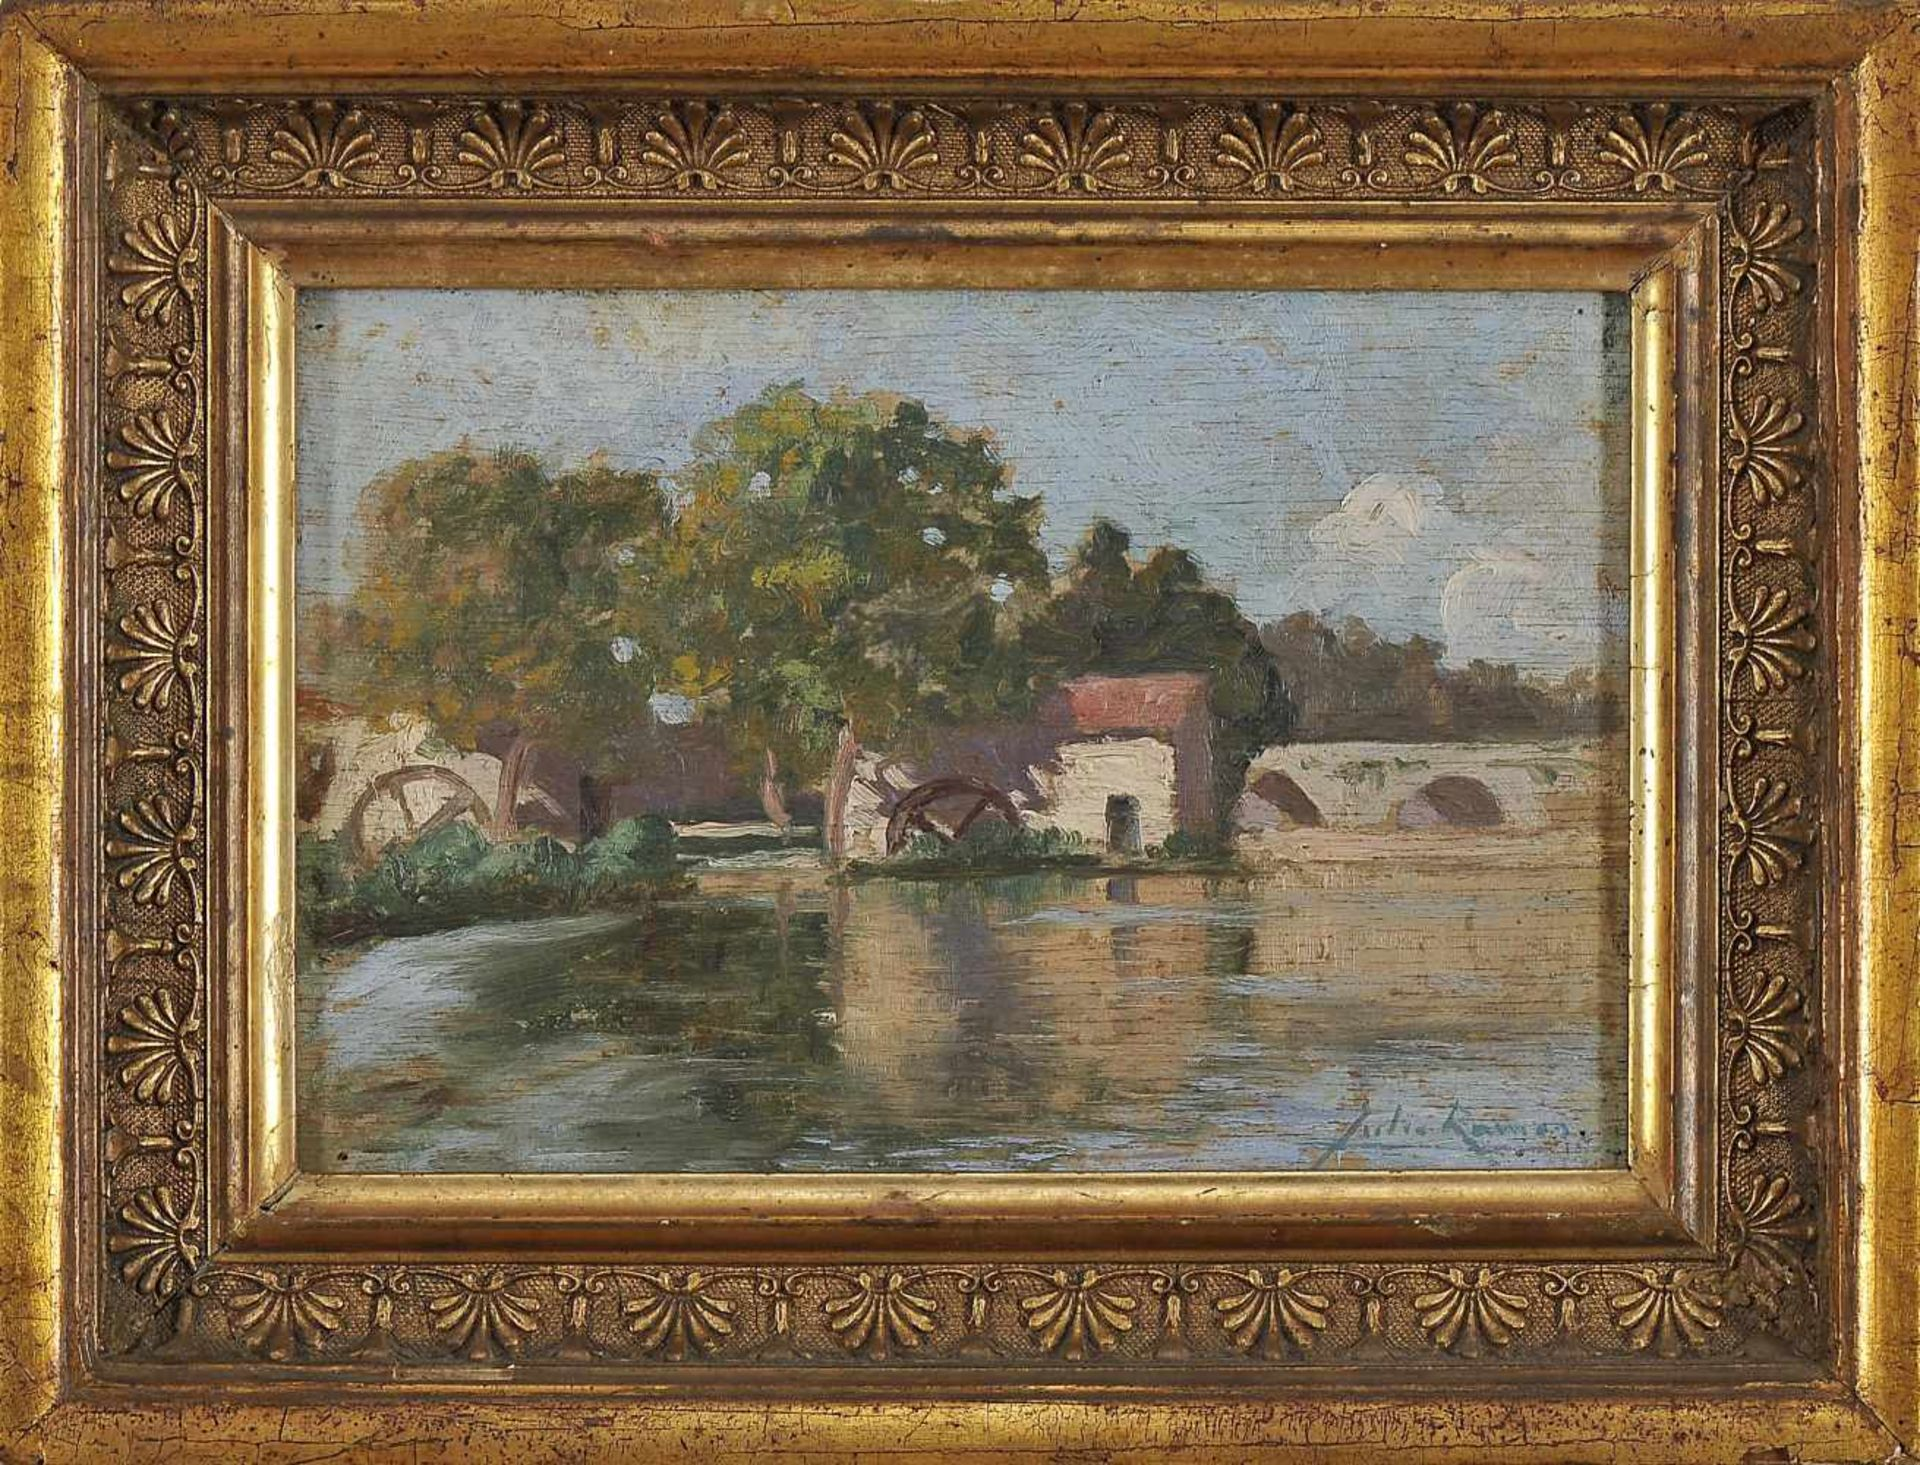 Los 92 - A WatermillJÚLIO RAMOS - 1868-1945, A Watermill, oil on wood, crack on the support, signed, Dim....